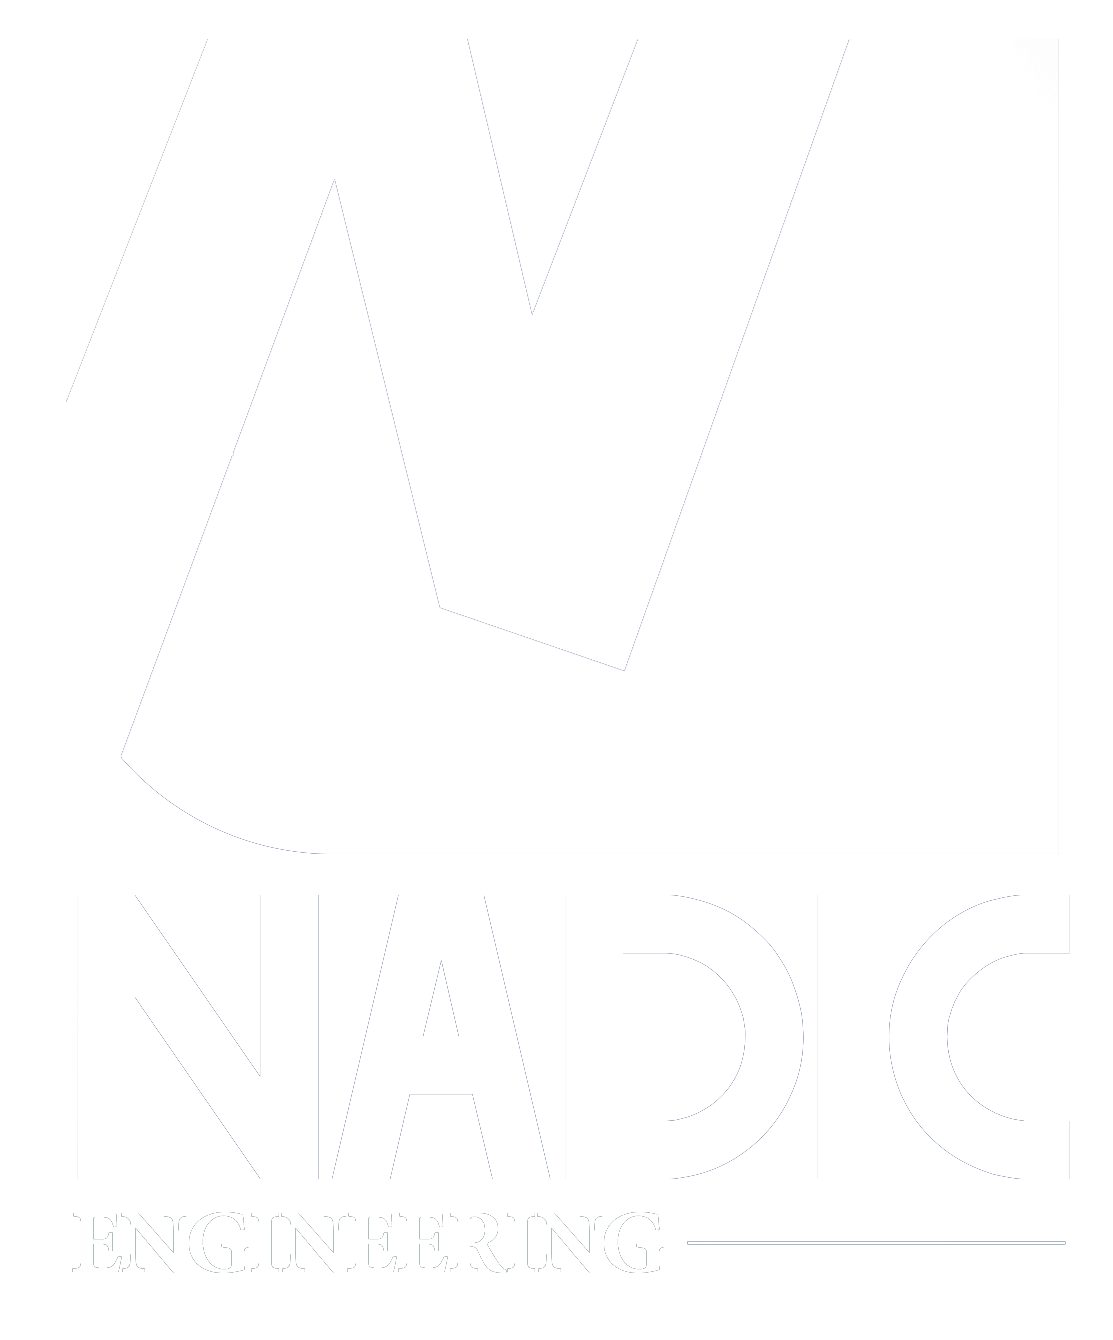 Nadic Engineering Services Inc